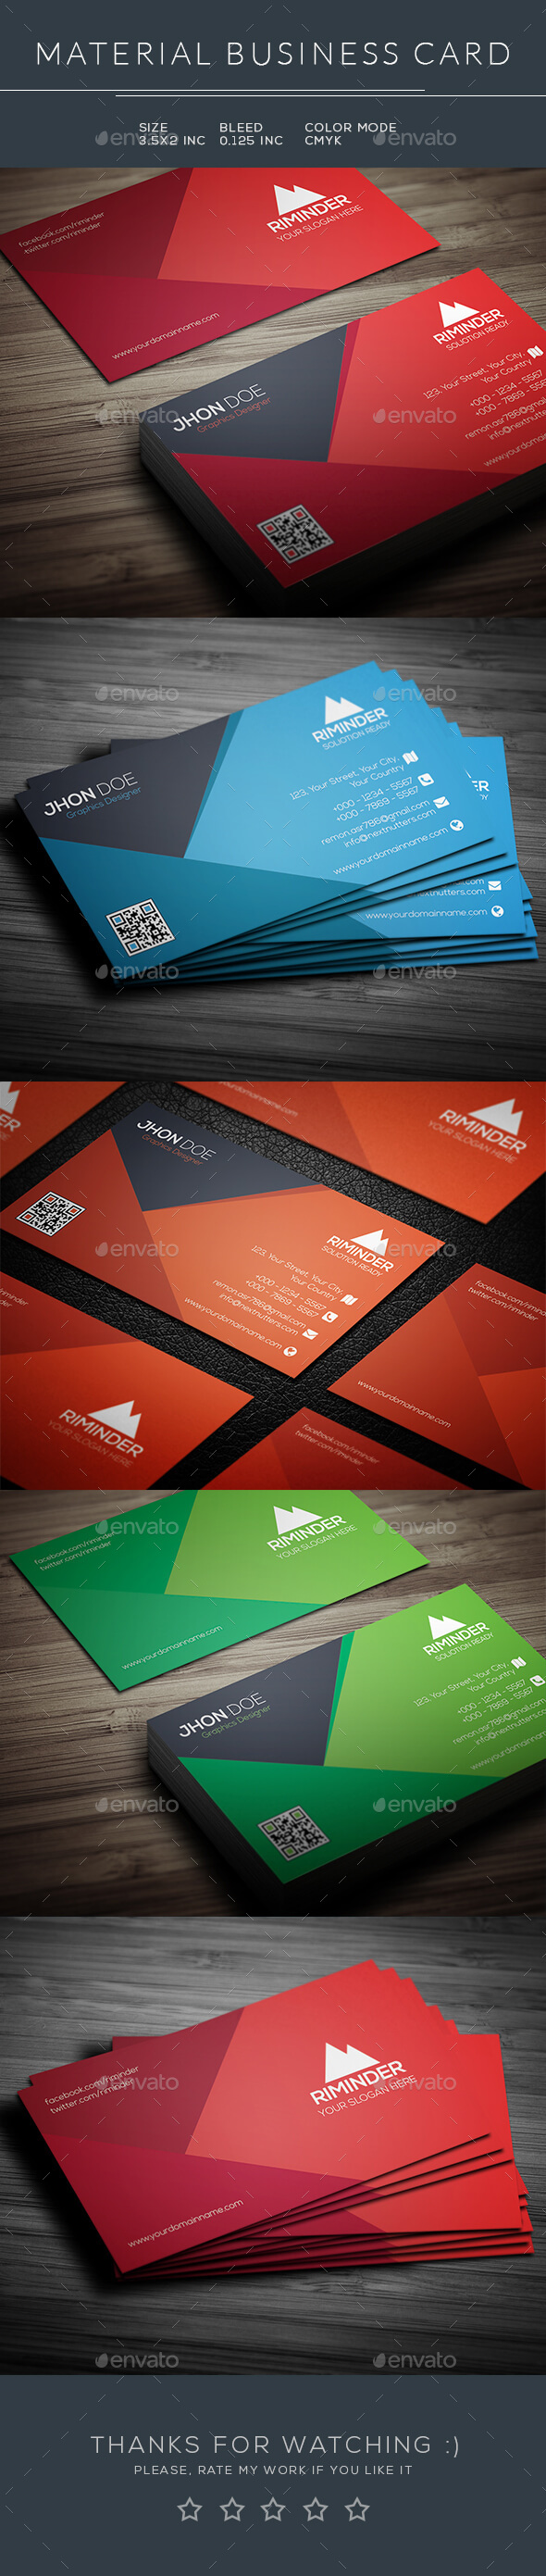 Material Business Card - Business Cards Print Templates